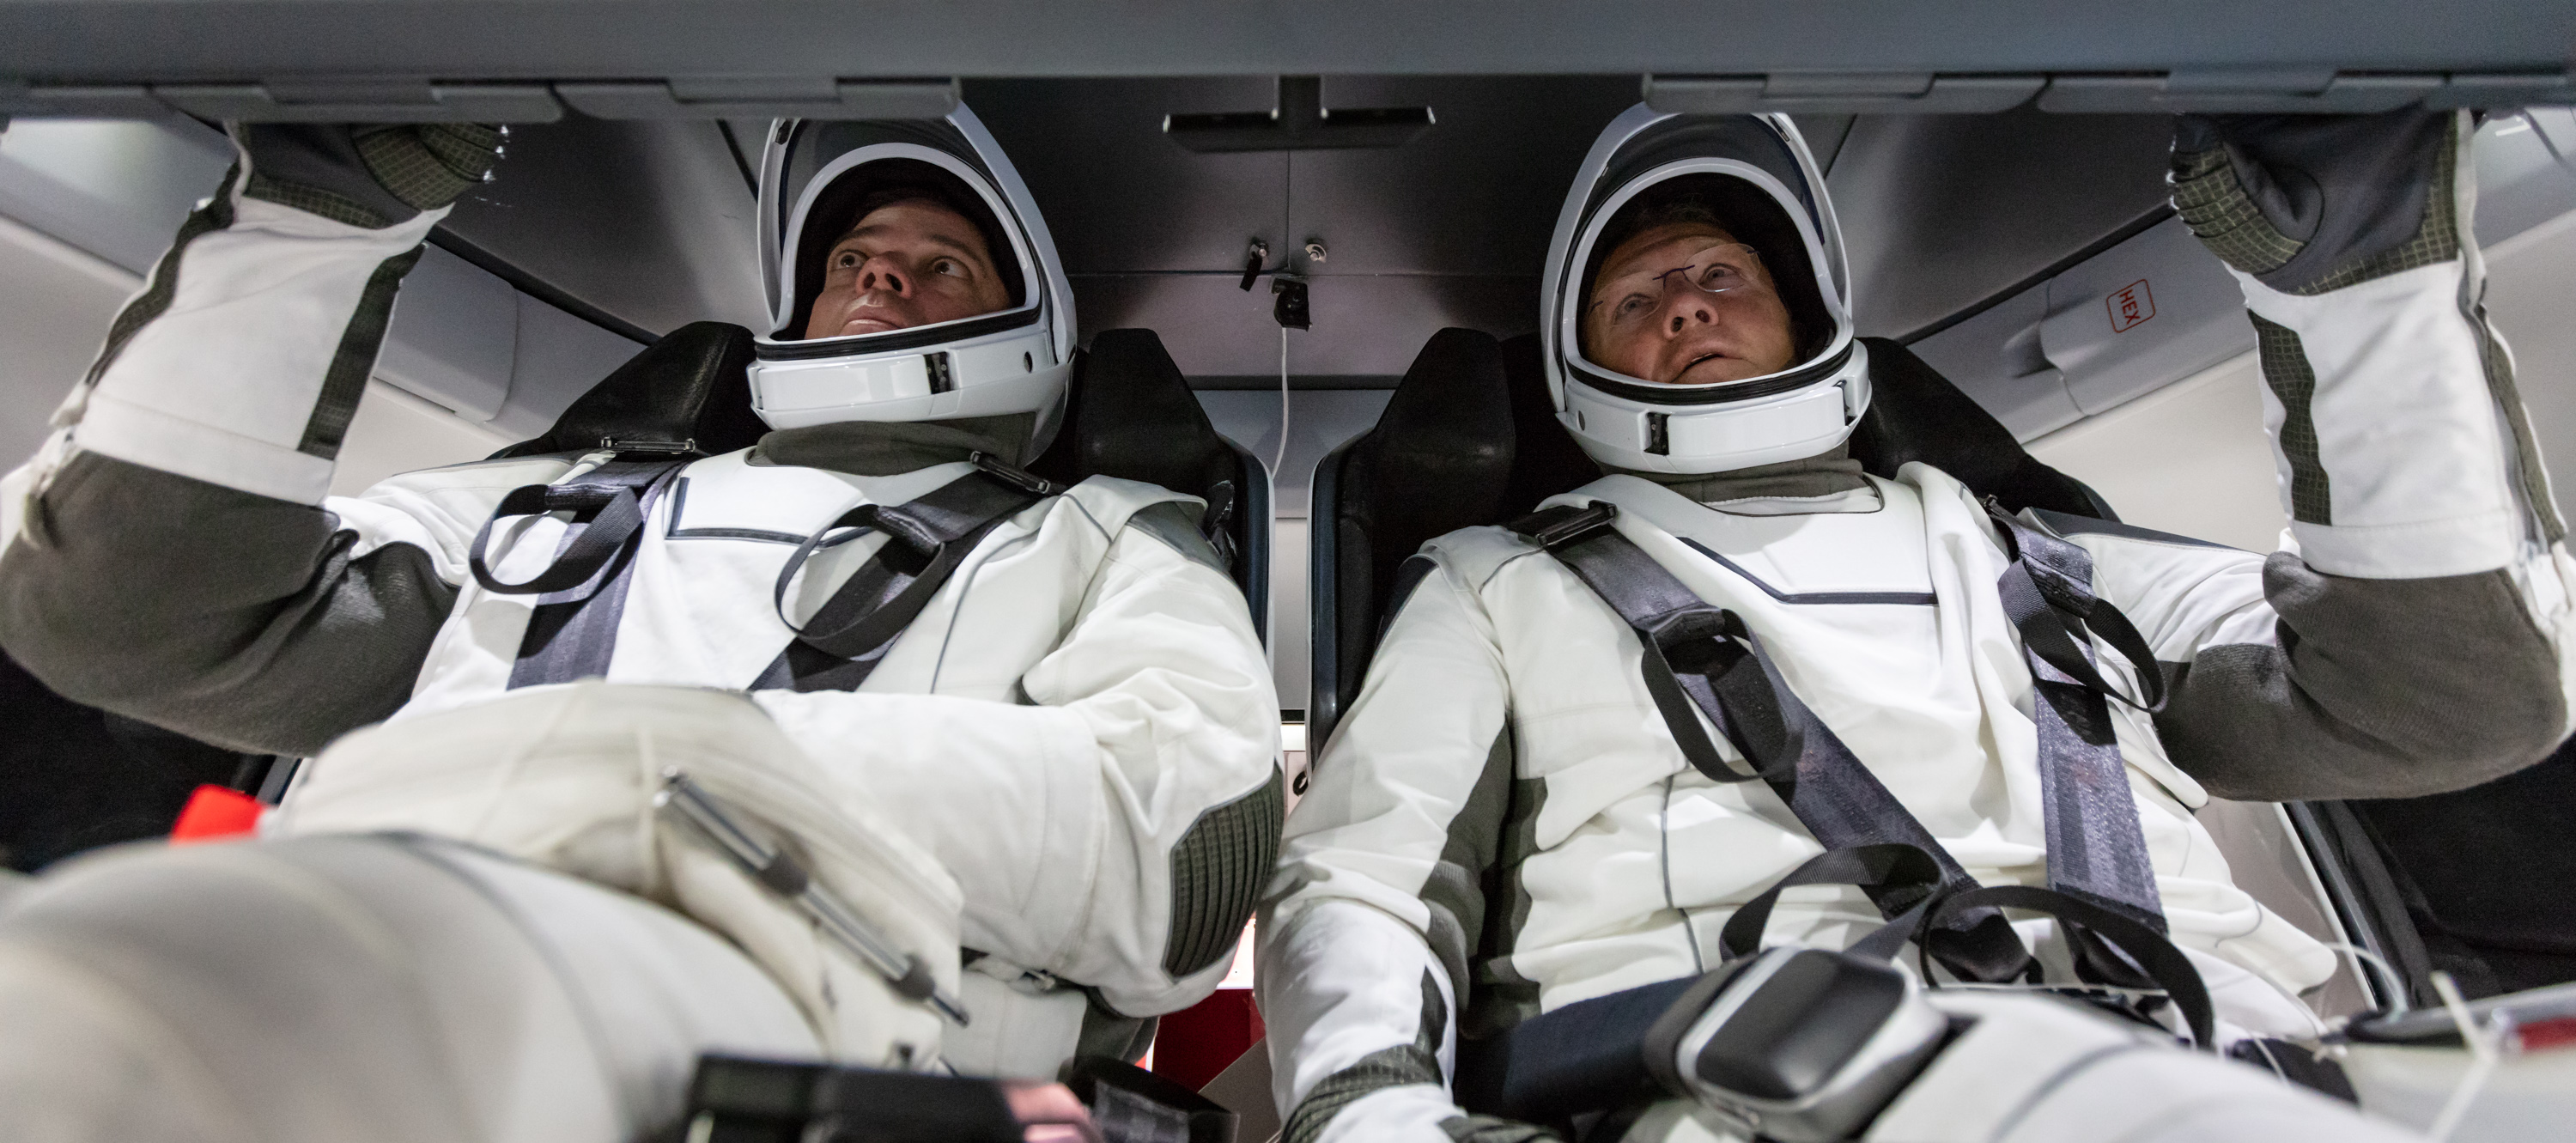 NASA, SpaceX Target May for 1st Crew Dragon Launch with Astronauts to ISS – But Will it Happen?